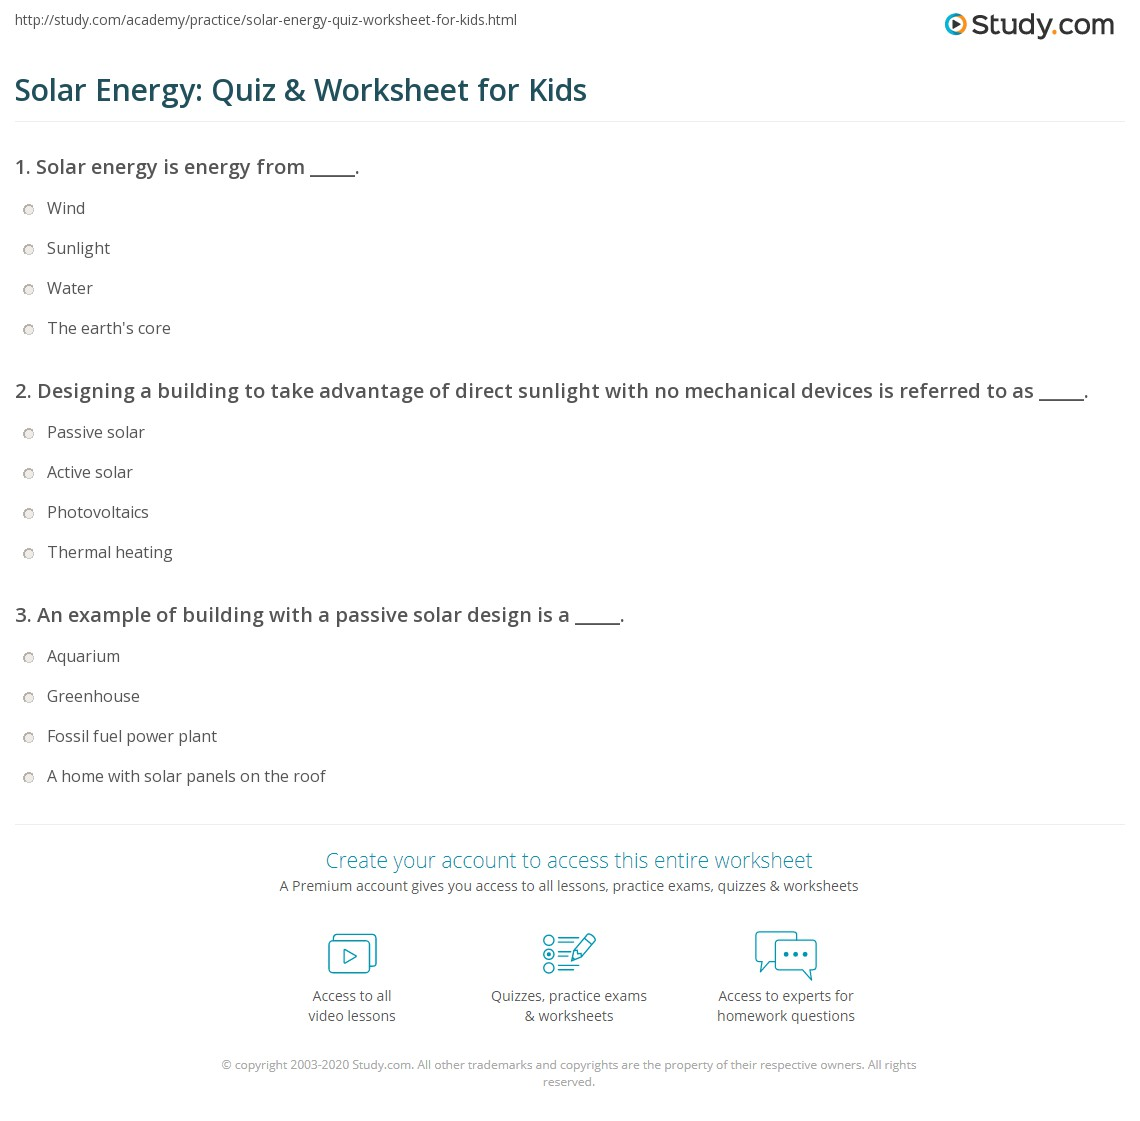 Worksheets Solar Energy Worksheet solar energy quiz worksheet for kids study com print lesson definition facts worksheet